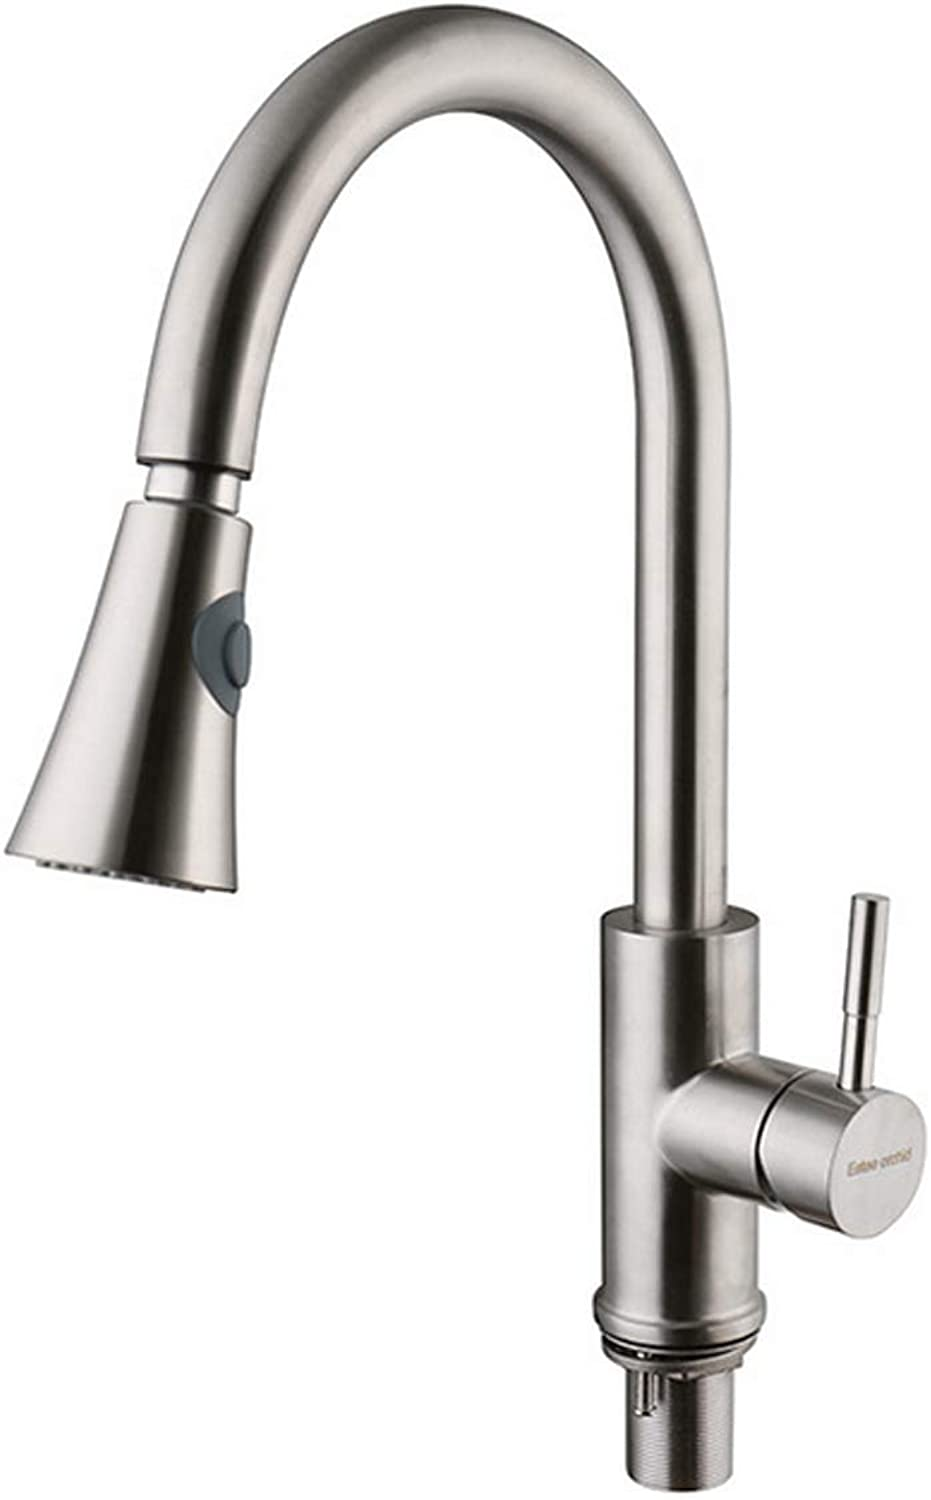 Kitchen Faucet Pull-Down Single Hole Stainless Steel Brushed 360 Degree redating Multi-Function Hot and Cold Adjustment Sink Water-tap